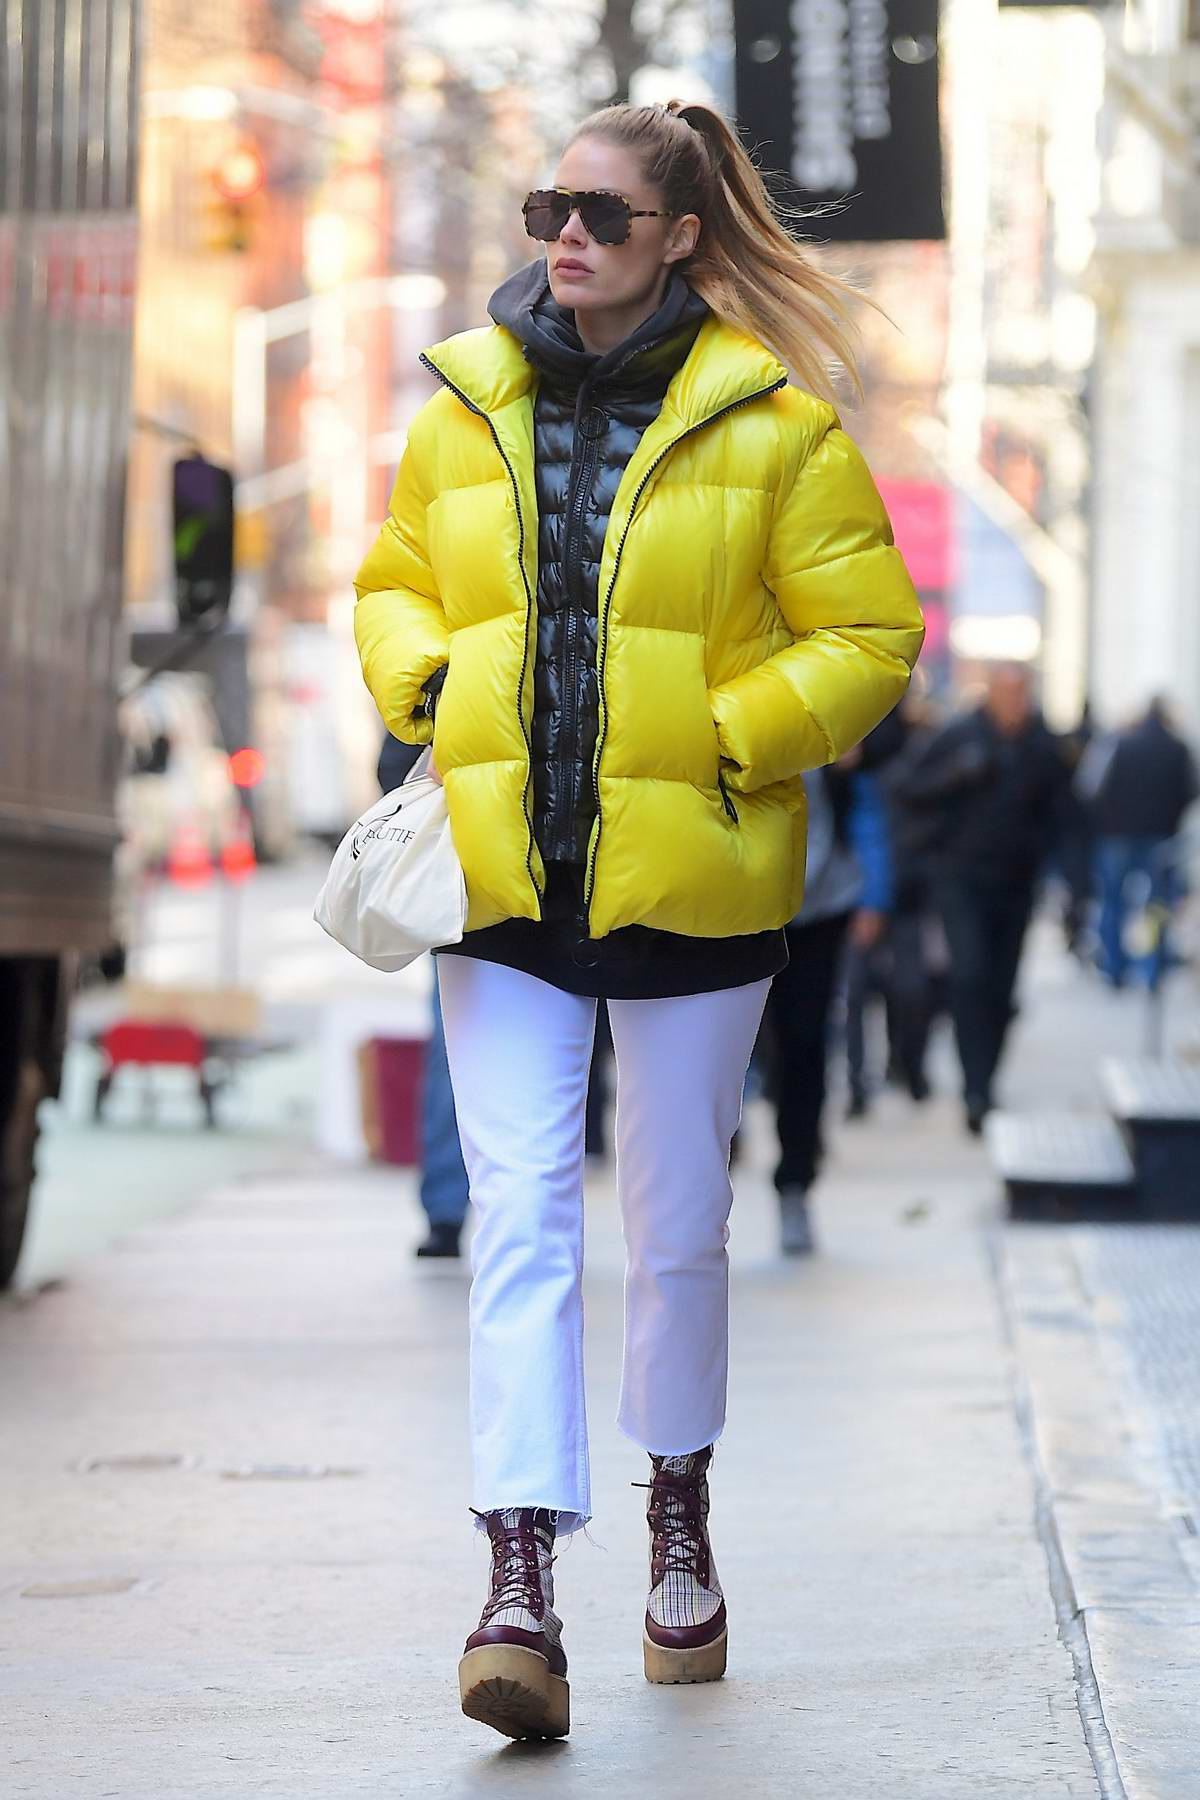 Doutzen Kroes wears a bright yellow puffer jacket while out in New York City